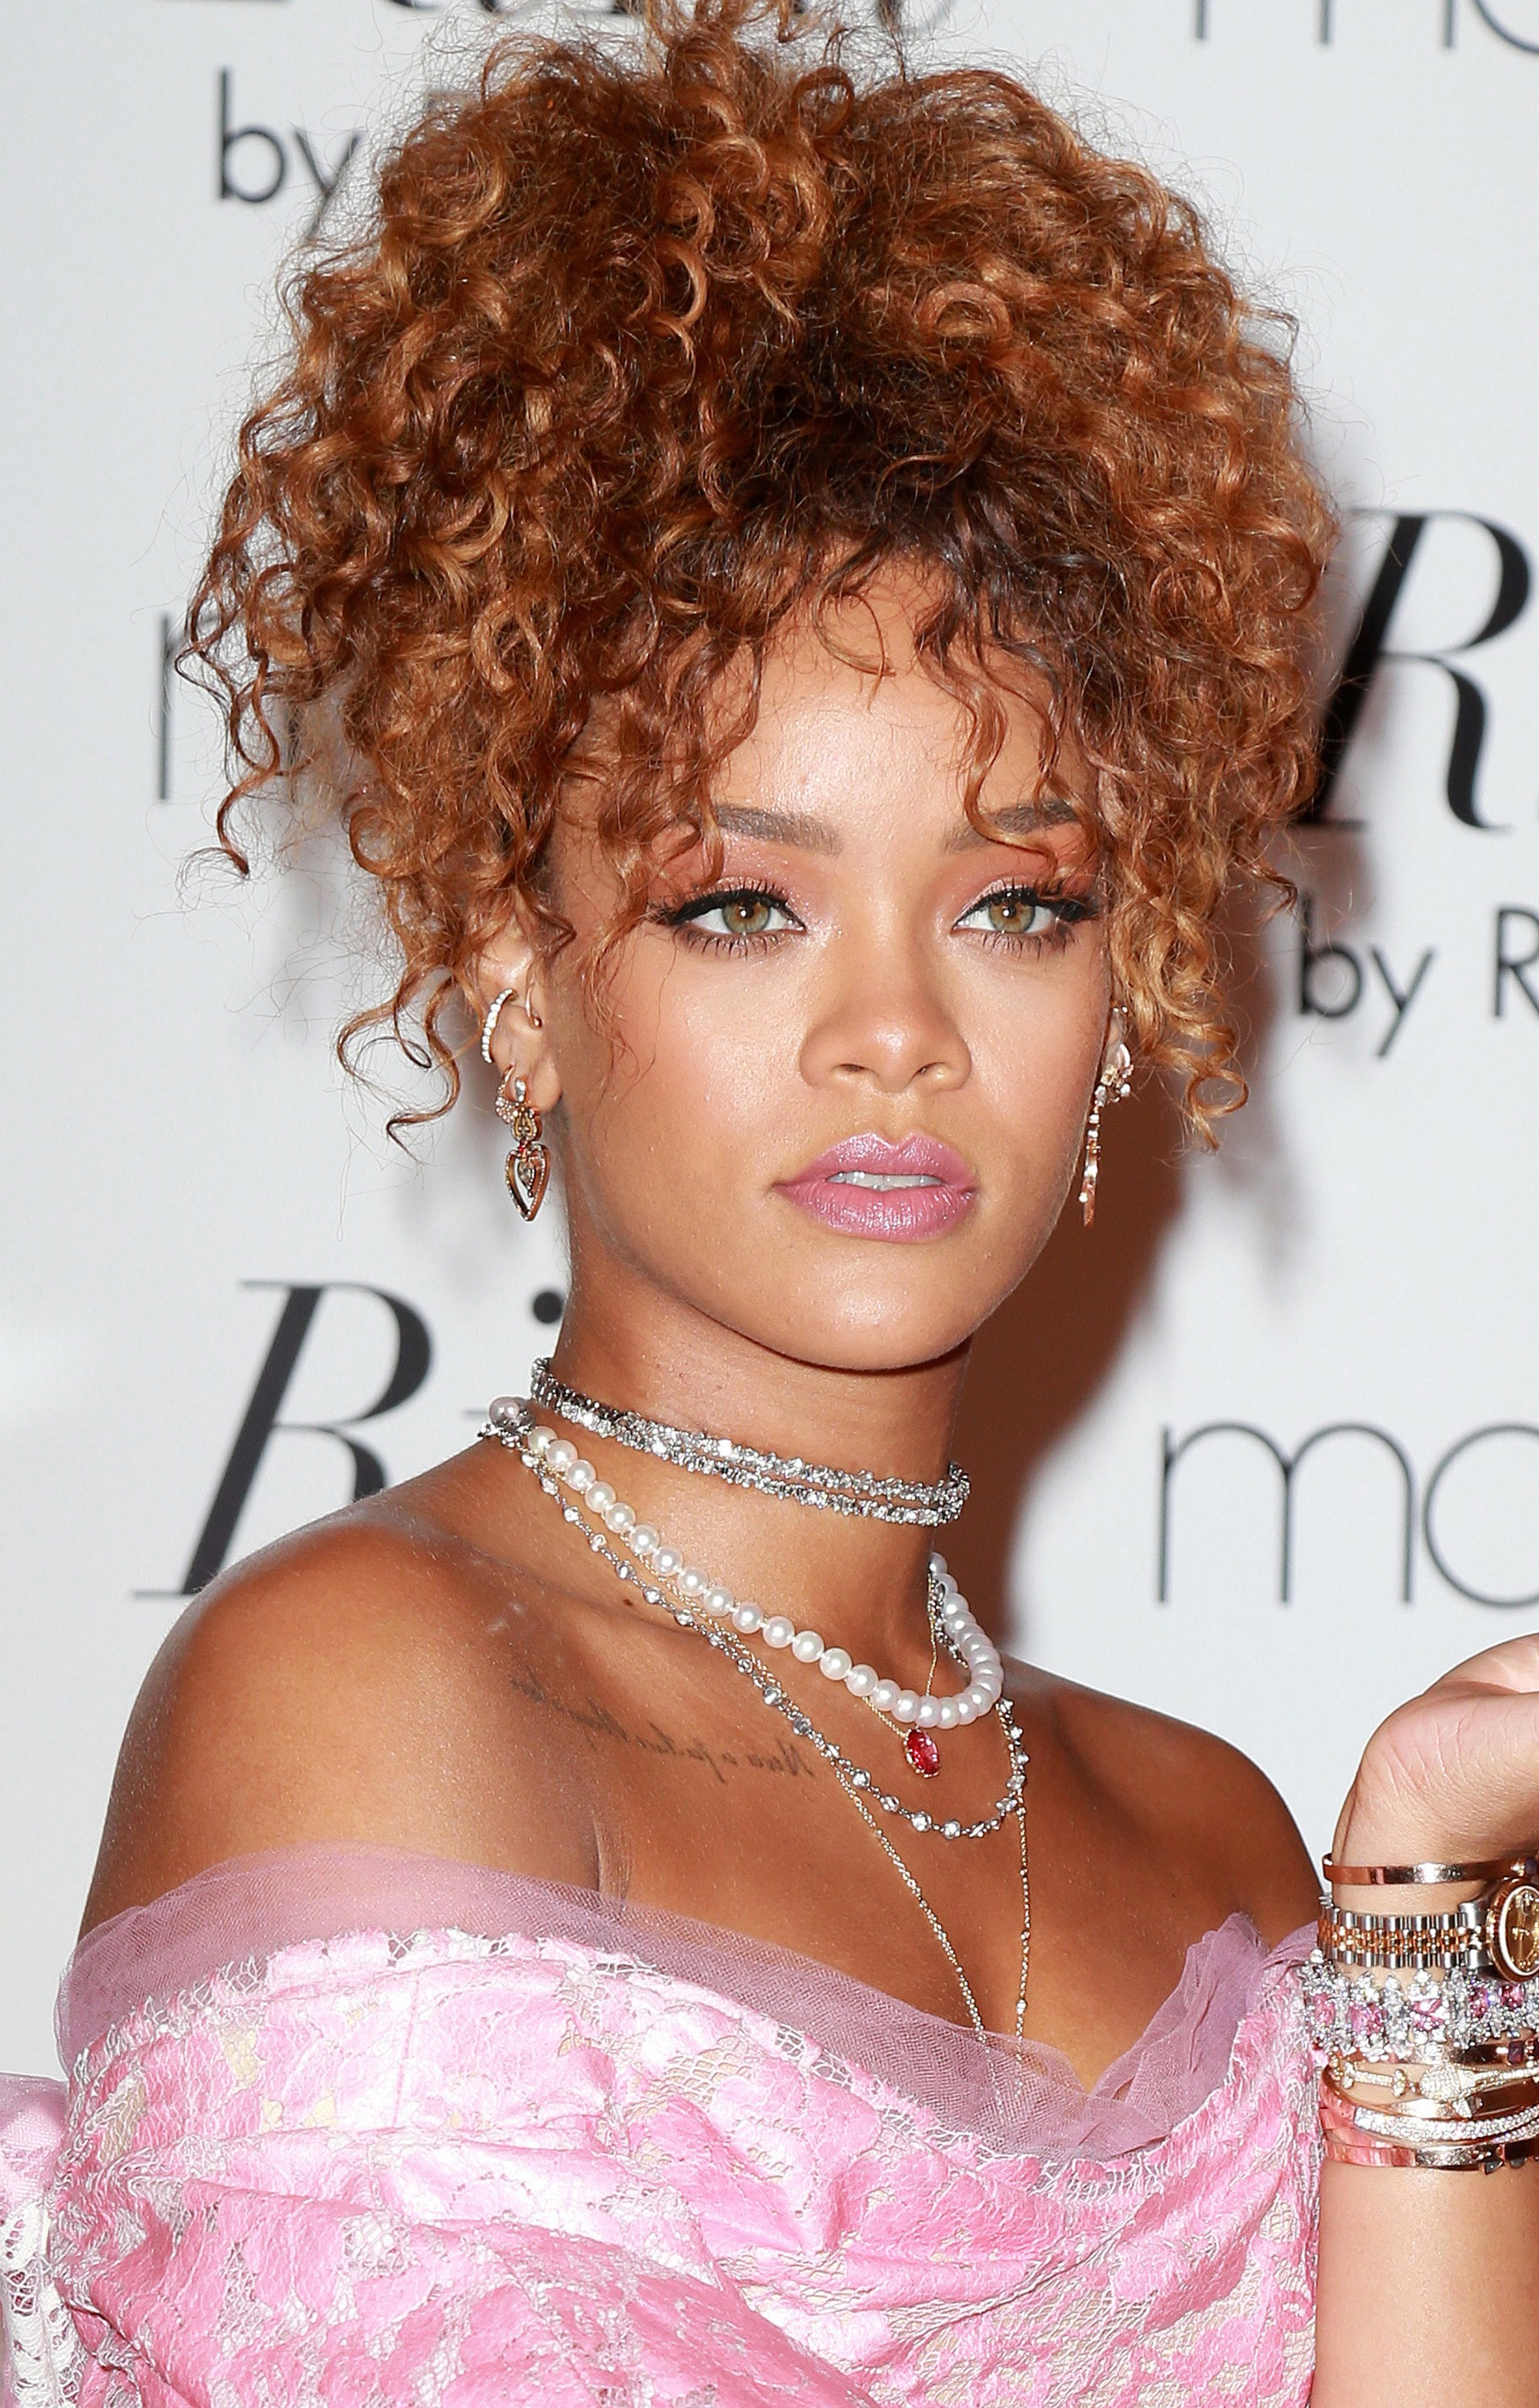 See How To Style Curly Hair And Bangs The A List Way